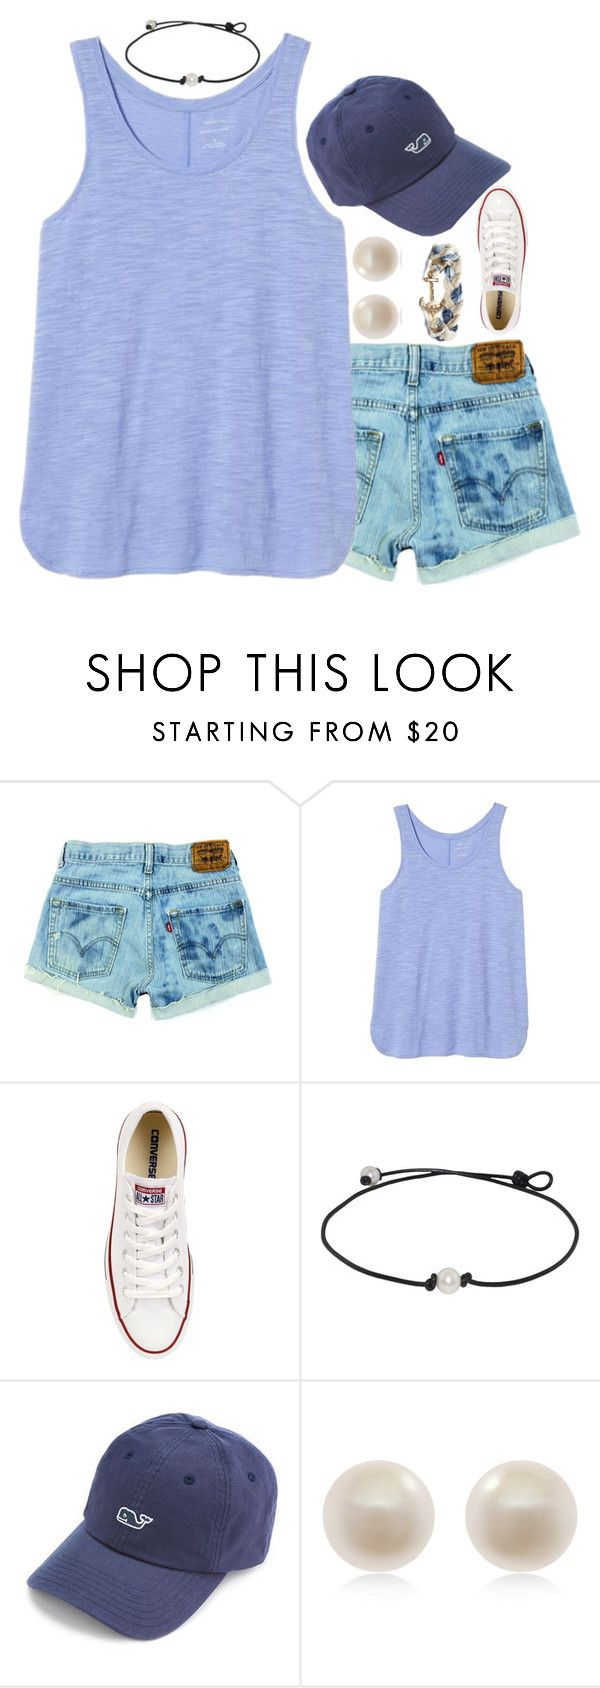 """""""My eyes baby they're fixed on you, in your snap back"""" by carolinaprep137 ❤ liked on Polyvore featuring Banana Republic, Converse, Vineyard Vines, Links of London and Brooks Brothers"""